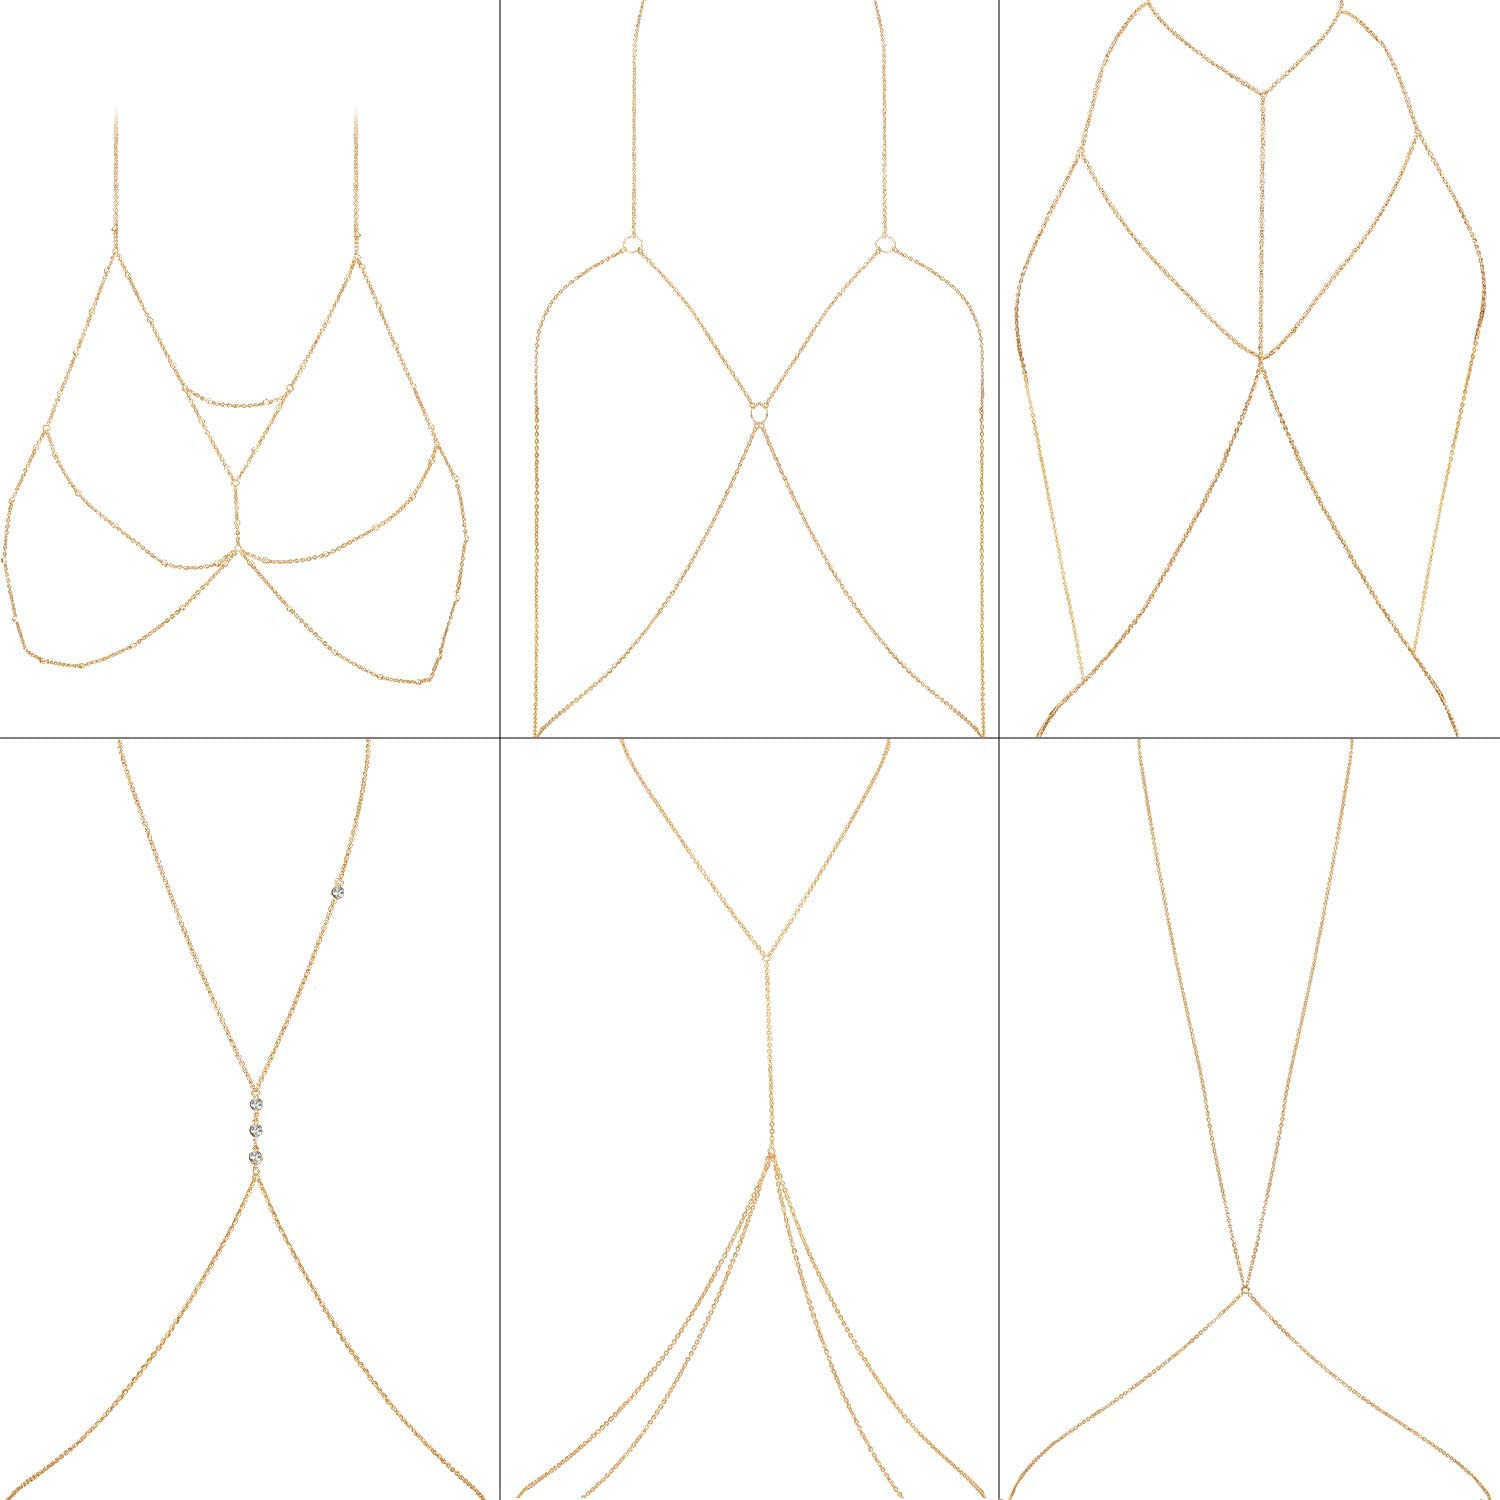 Sexy Gold Max 62% OFF Body Chains Spasm price Charm Necklace Chain Belly Layered Bikini